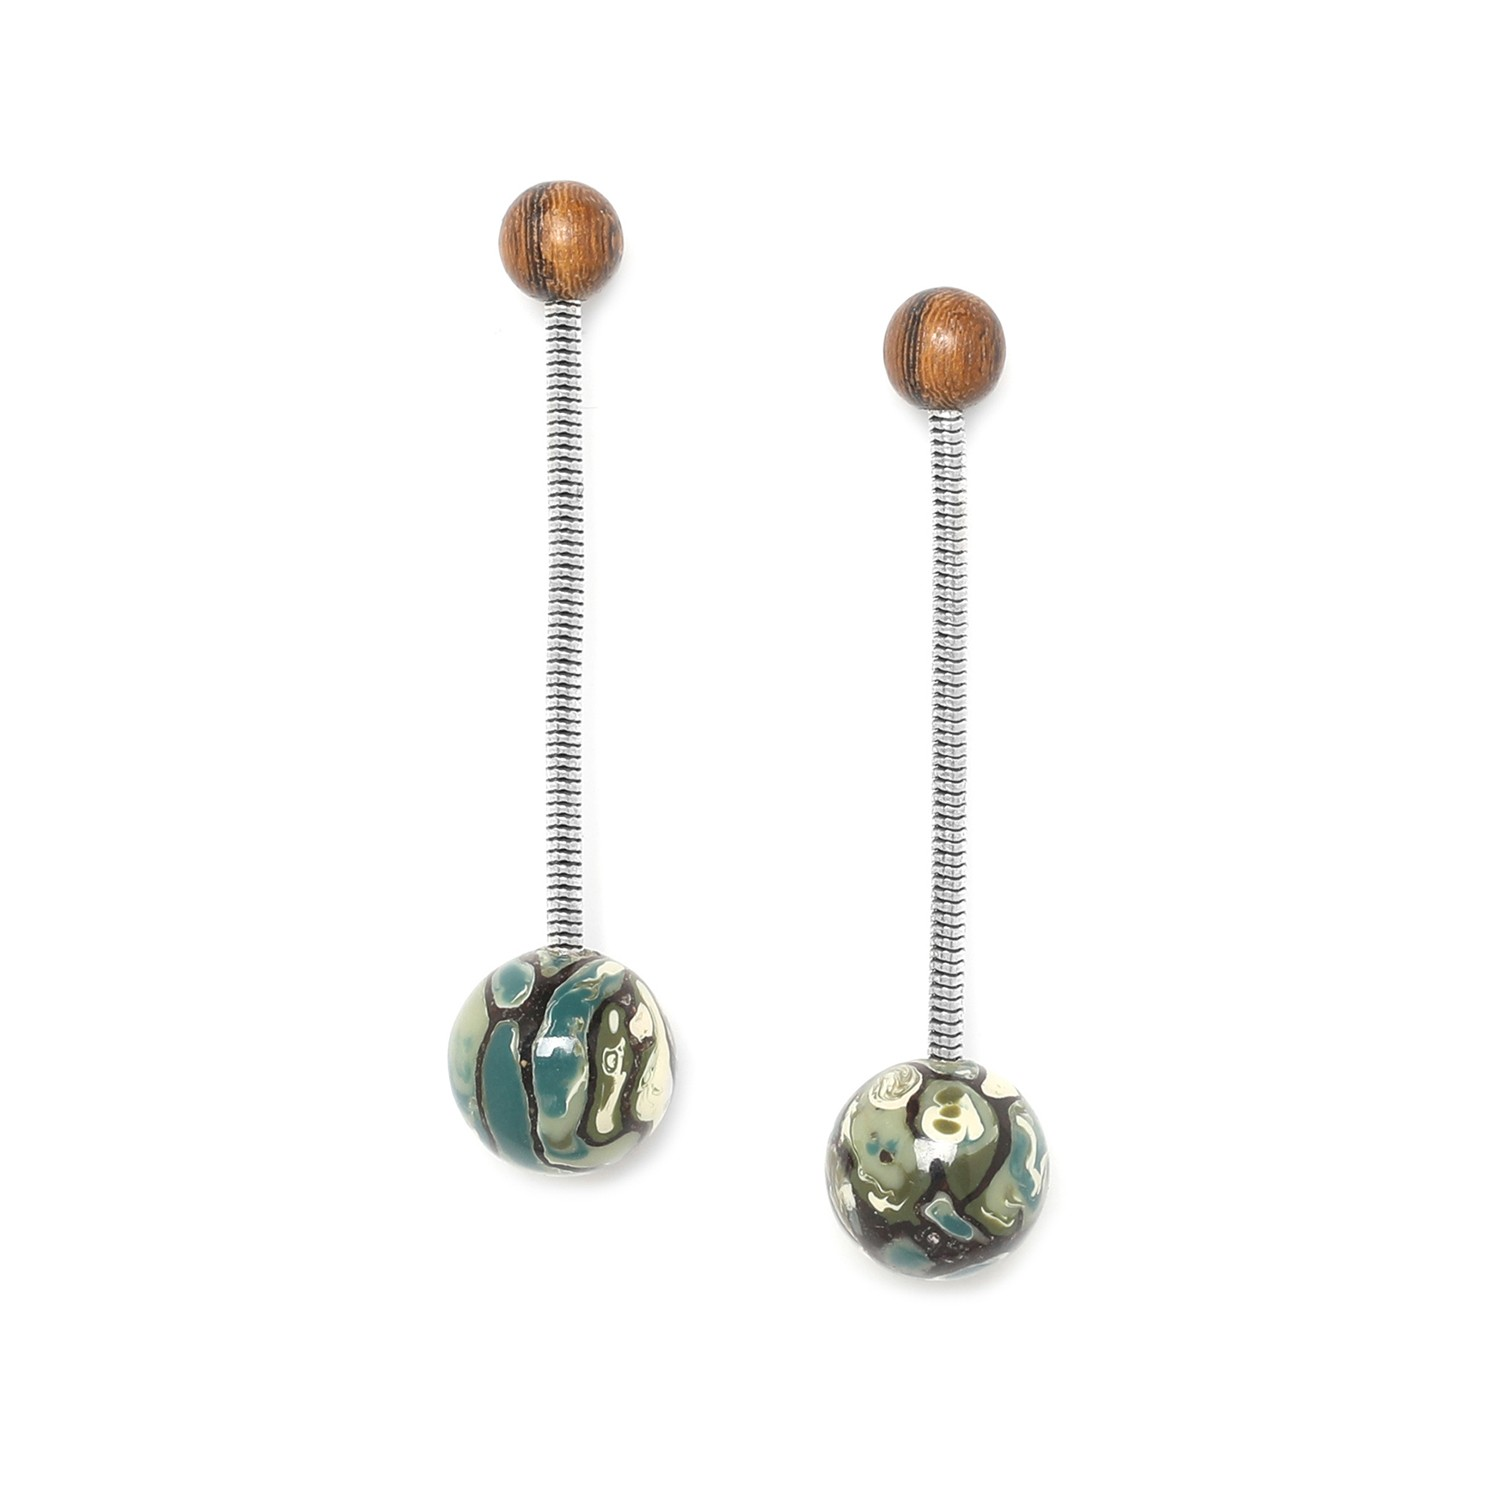 GREENWAY long chain earrings